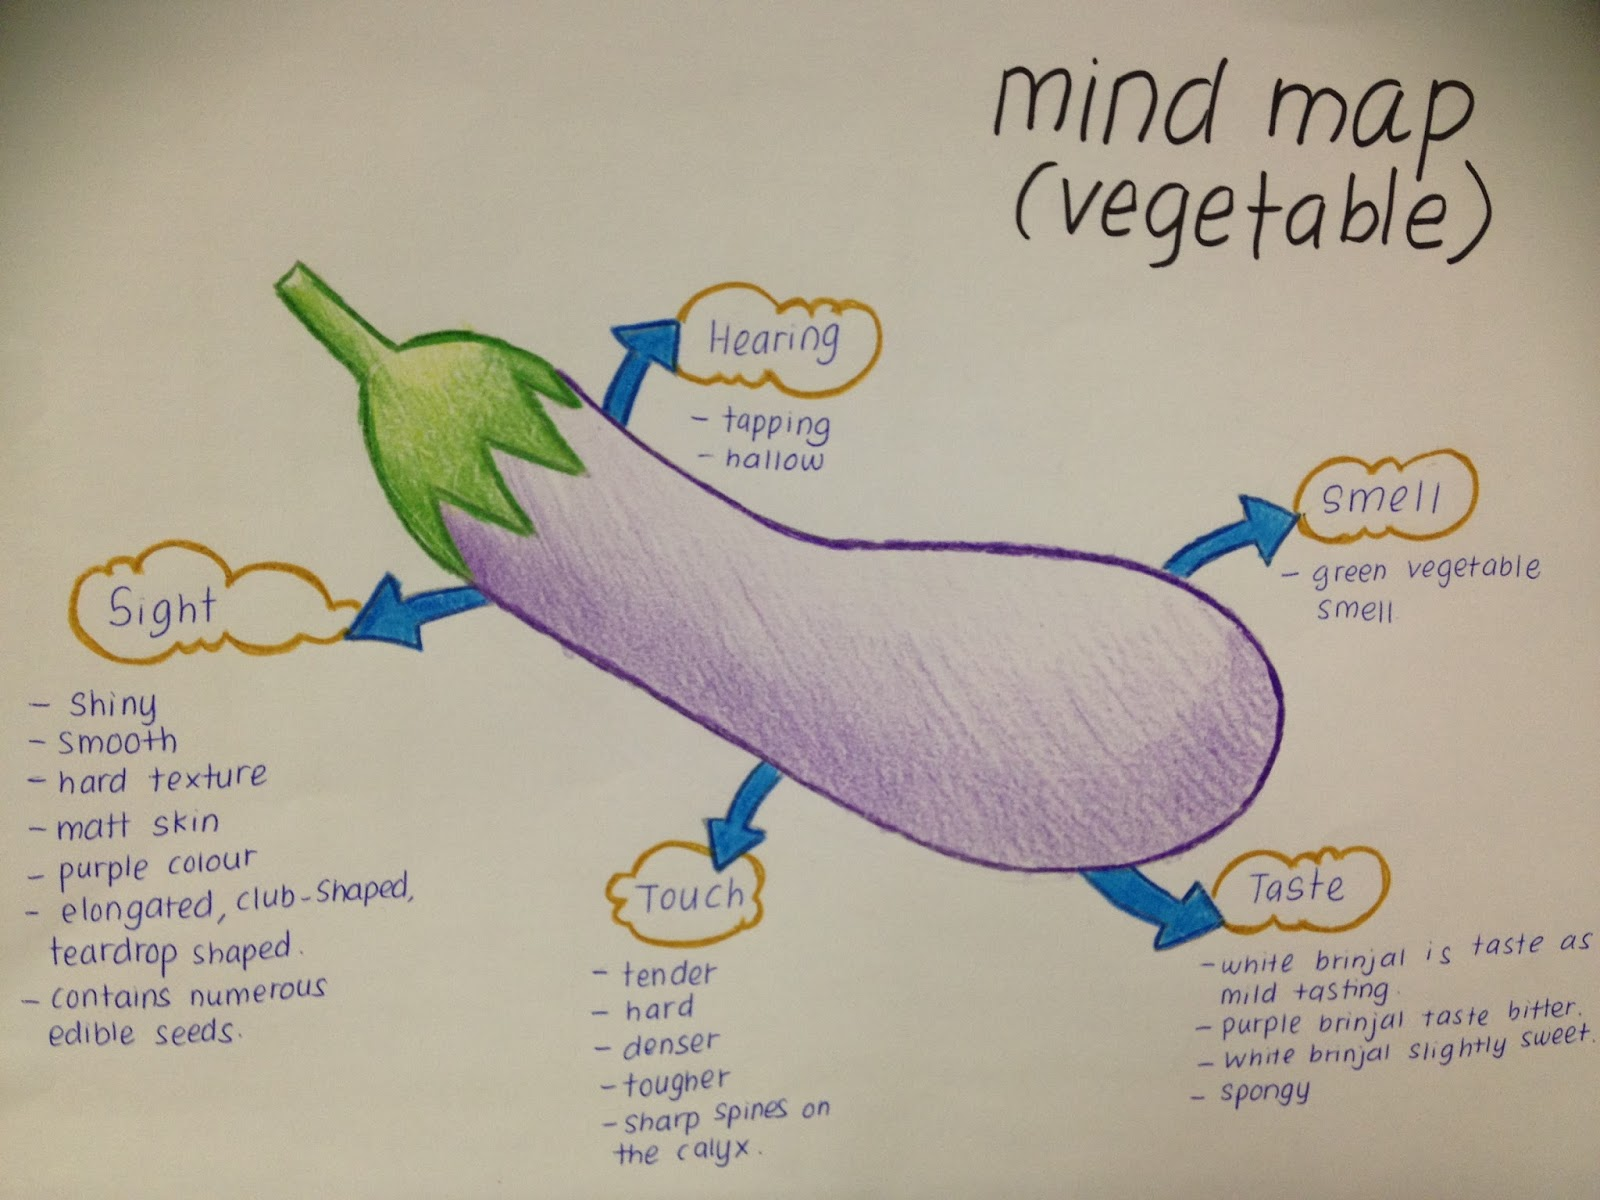 rathinithevindran english 2 engl0205 this is the mindmap that i have done before start to do the descriptive essay about the vegetable brinjal in this mindmap i have describe about the brinjal